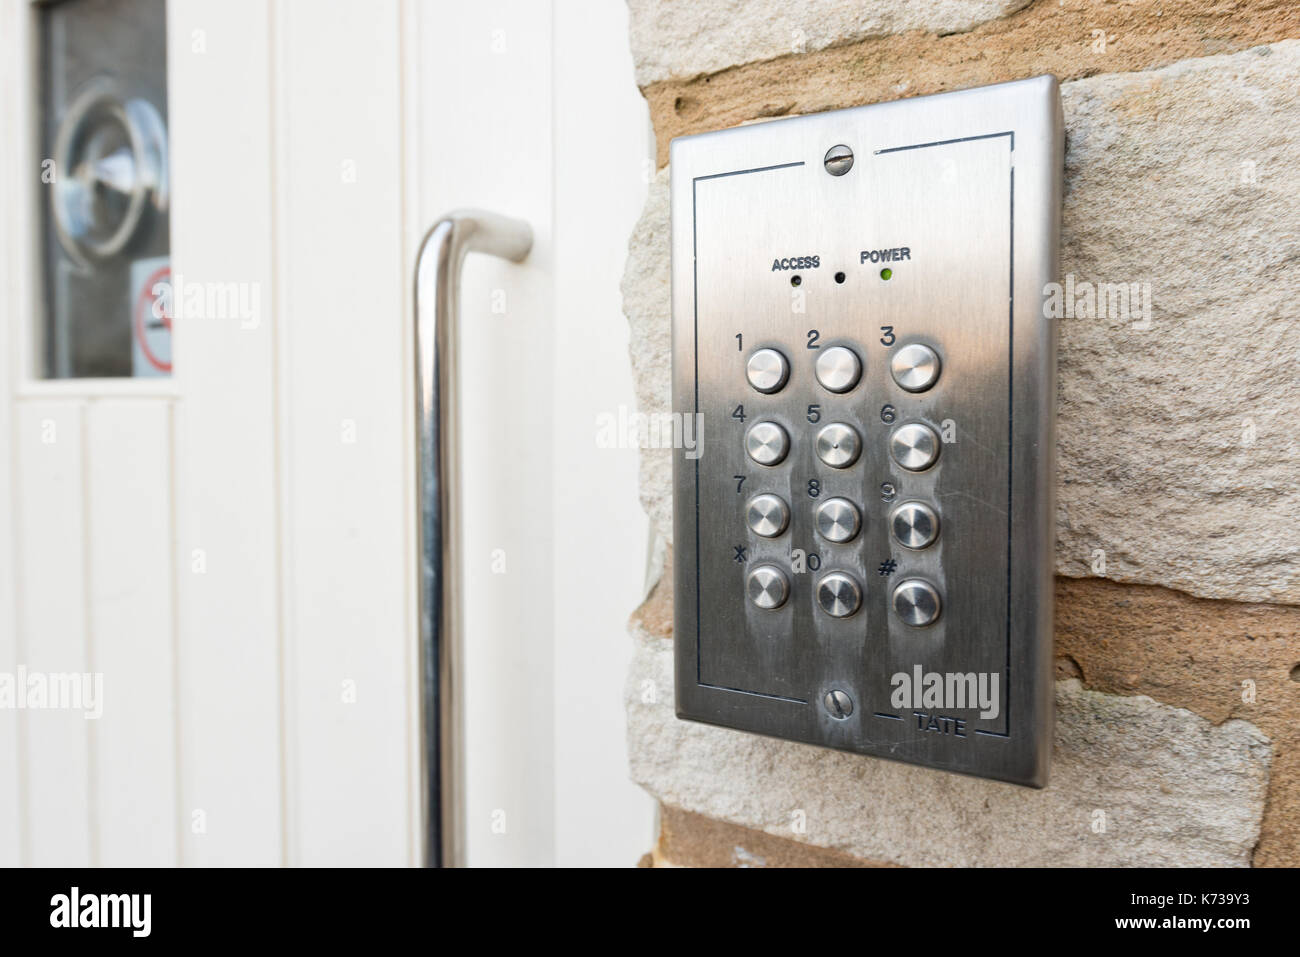 Door Entry System Stock Photos & Door Entry System Stock Images ...